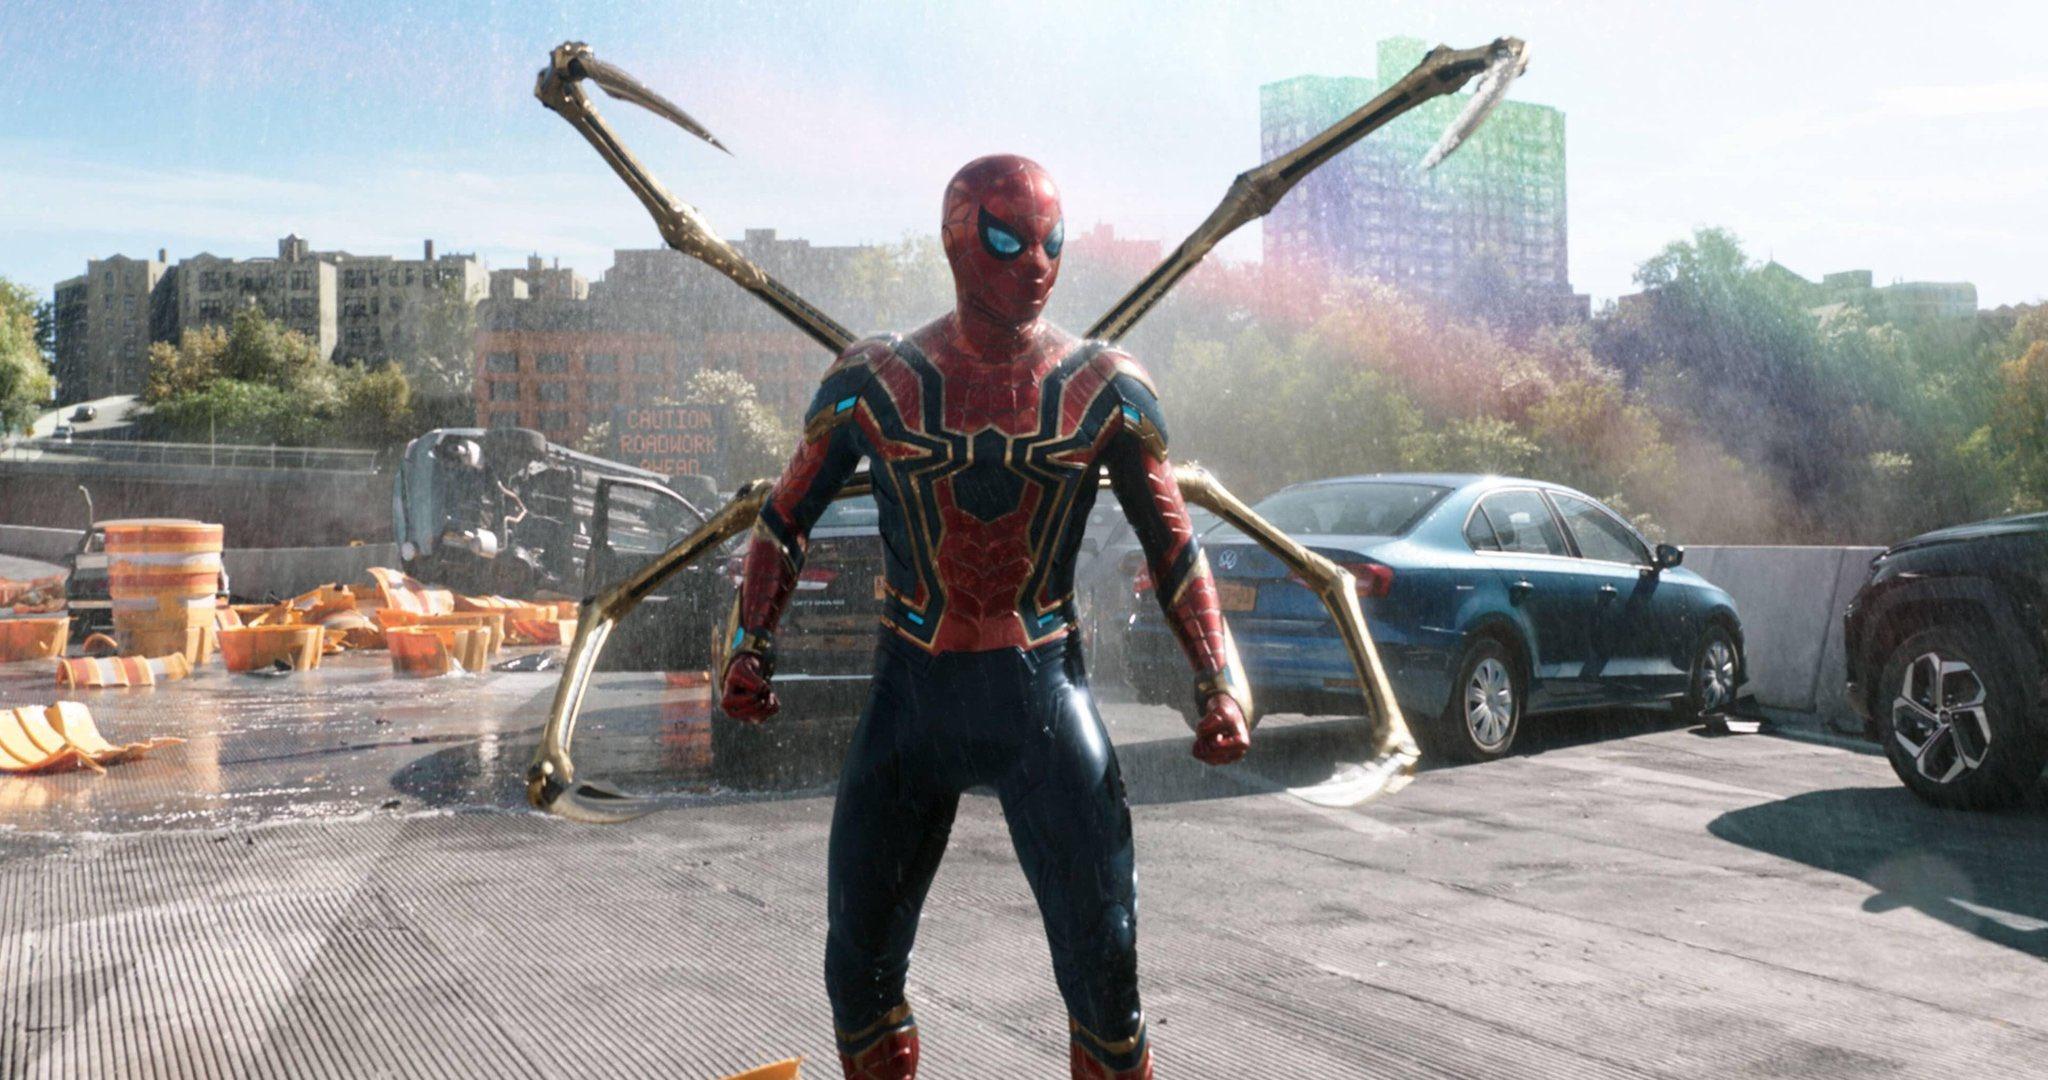 """Tom Holland as Peter Parker/Spider-Man in """"Spider-Man: No Way Home"""" (2021)"""